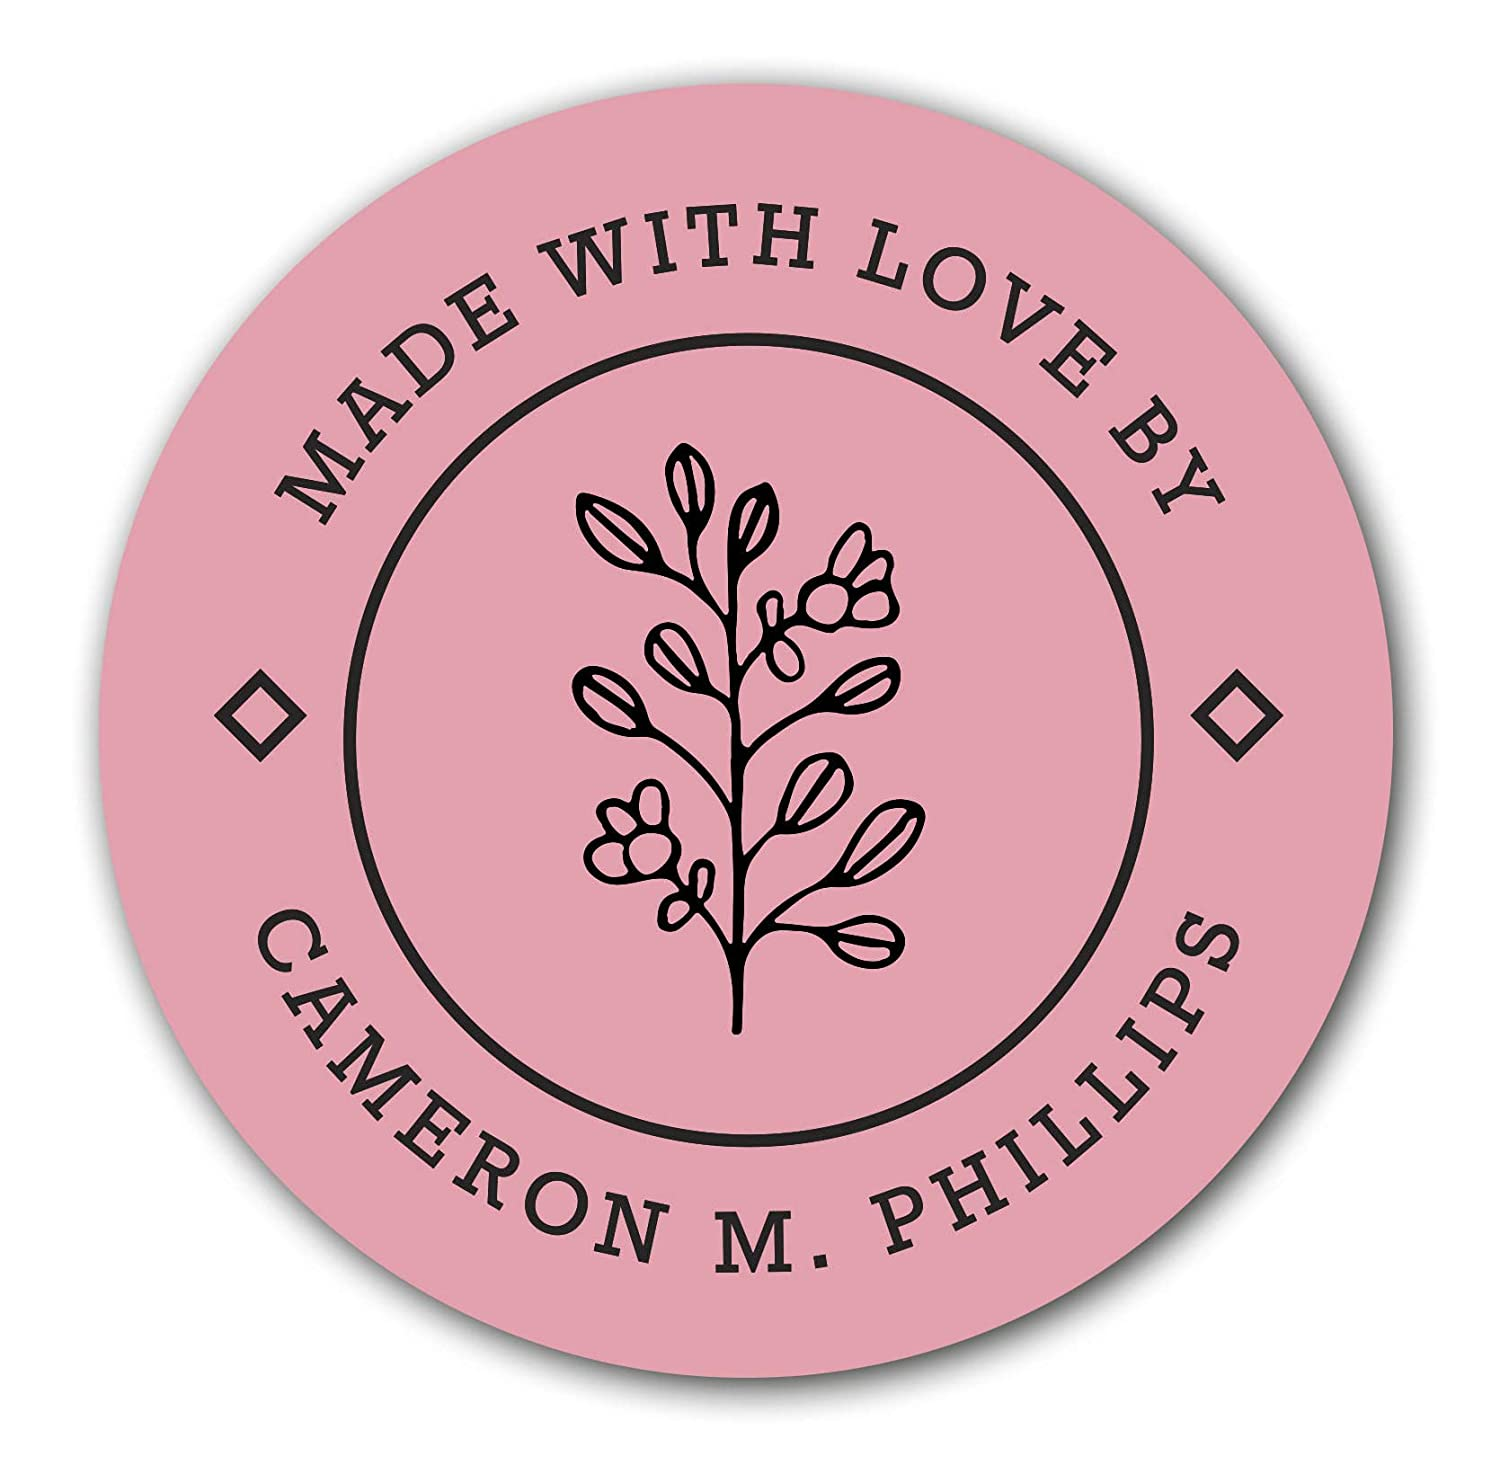 Handmade with Love Custom Made with Love Stickers Custom Gift Stickers Favor Labels Gift Stickers Favor Stickers 22:26